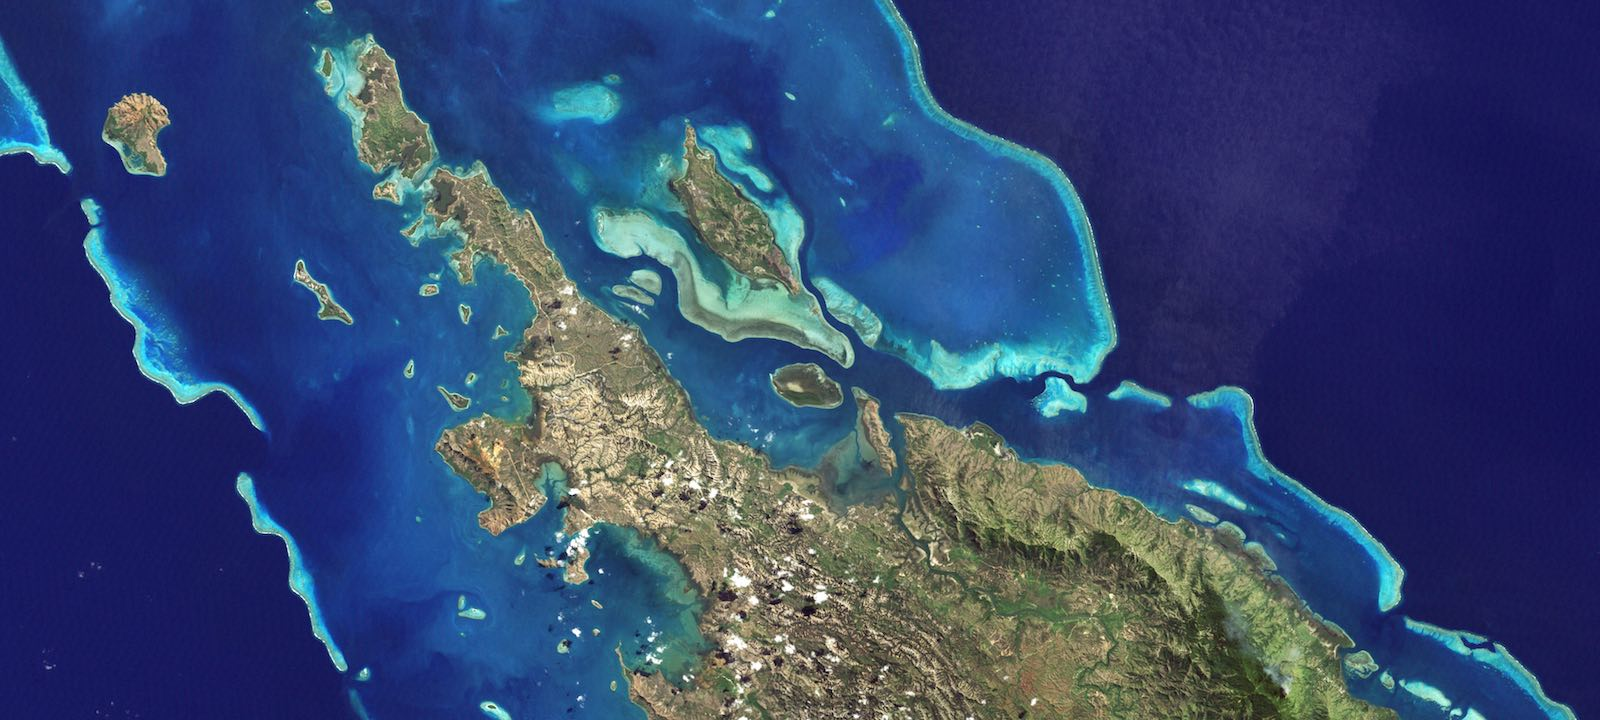 New Caledonia (Photo: NASA Visible Earth)